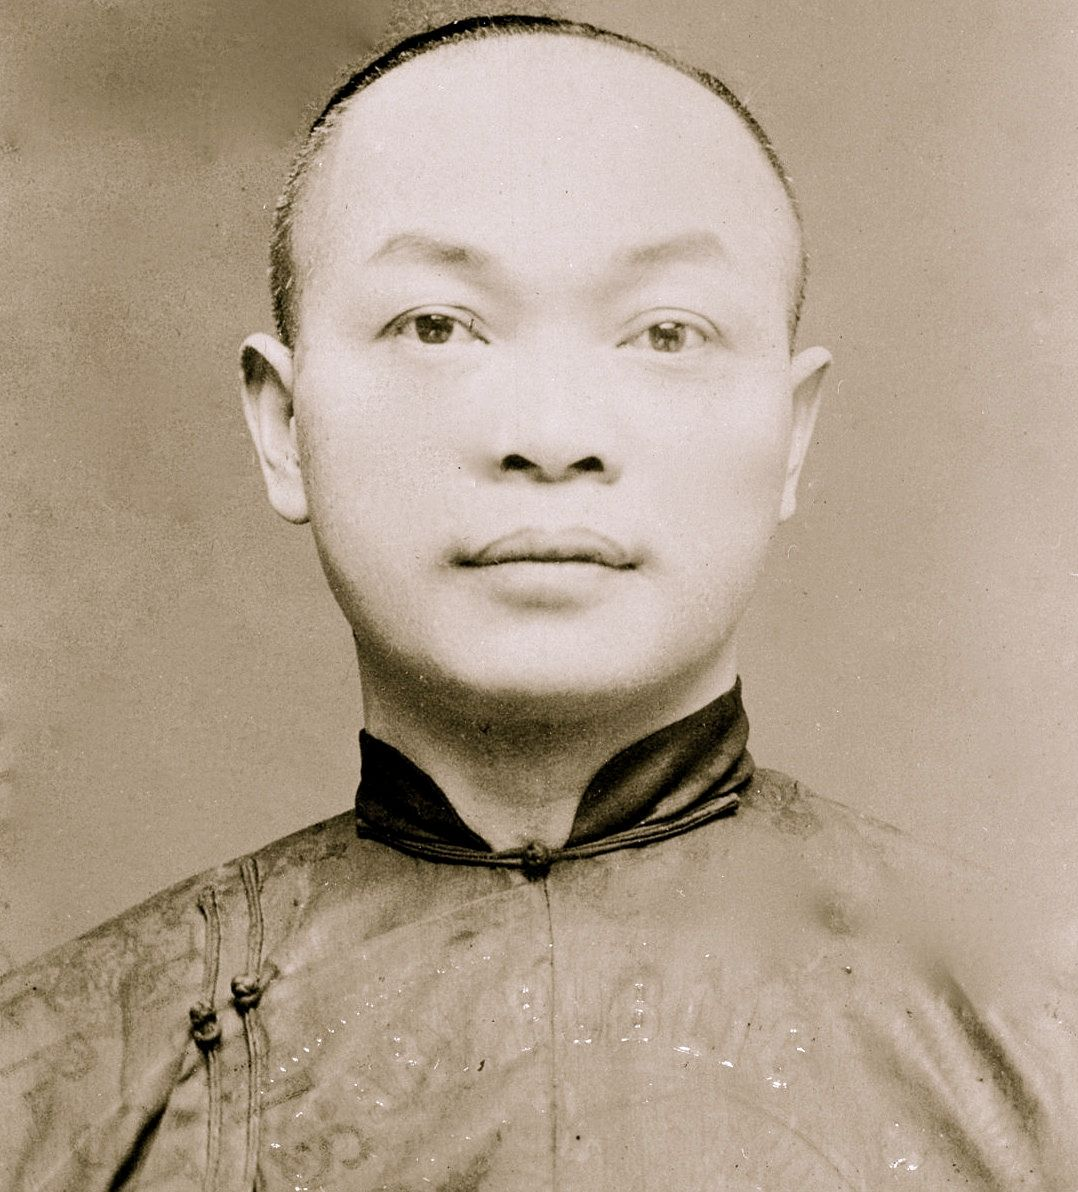 <span>The case of Wong Kim Ark, who was born in San Francisco to Chinese parents, went to the Supreme Court in the late 19th